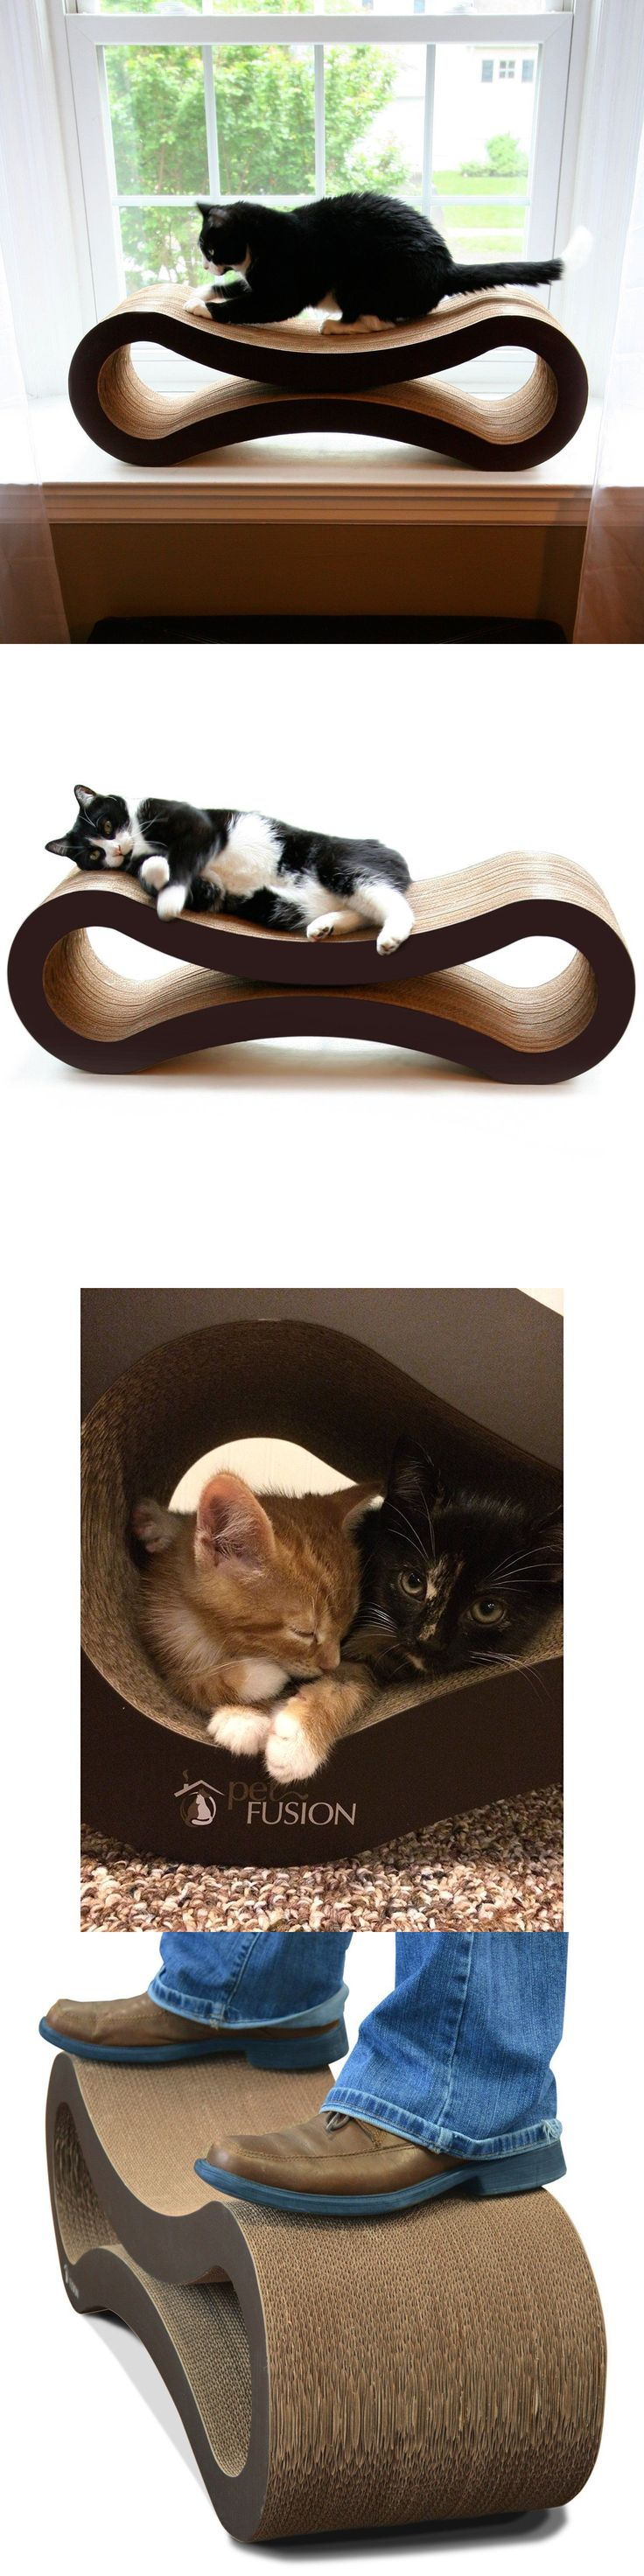 Furniture and Scratchers 20740: Petfusion Ultimate Superior Large Cardboard Cat Scratcher Lounge Shelf Sofa -> BUY IT NOW ONLY: $55 on eBay!